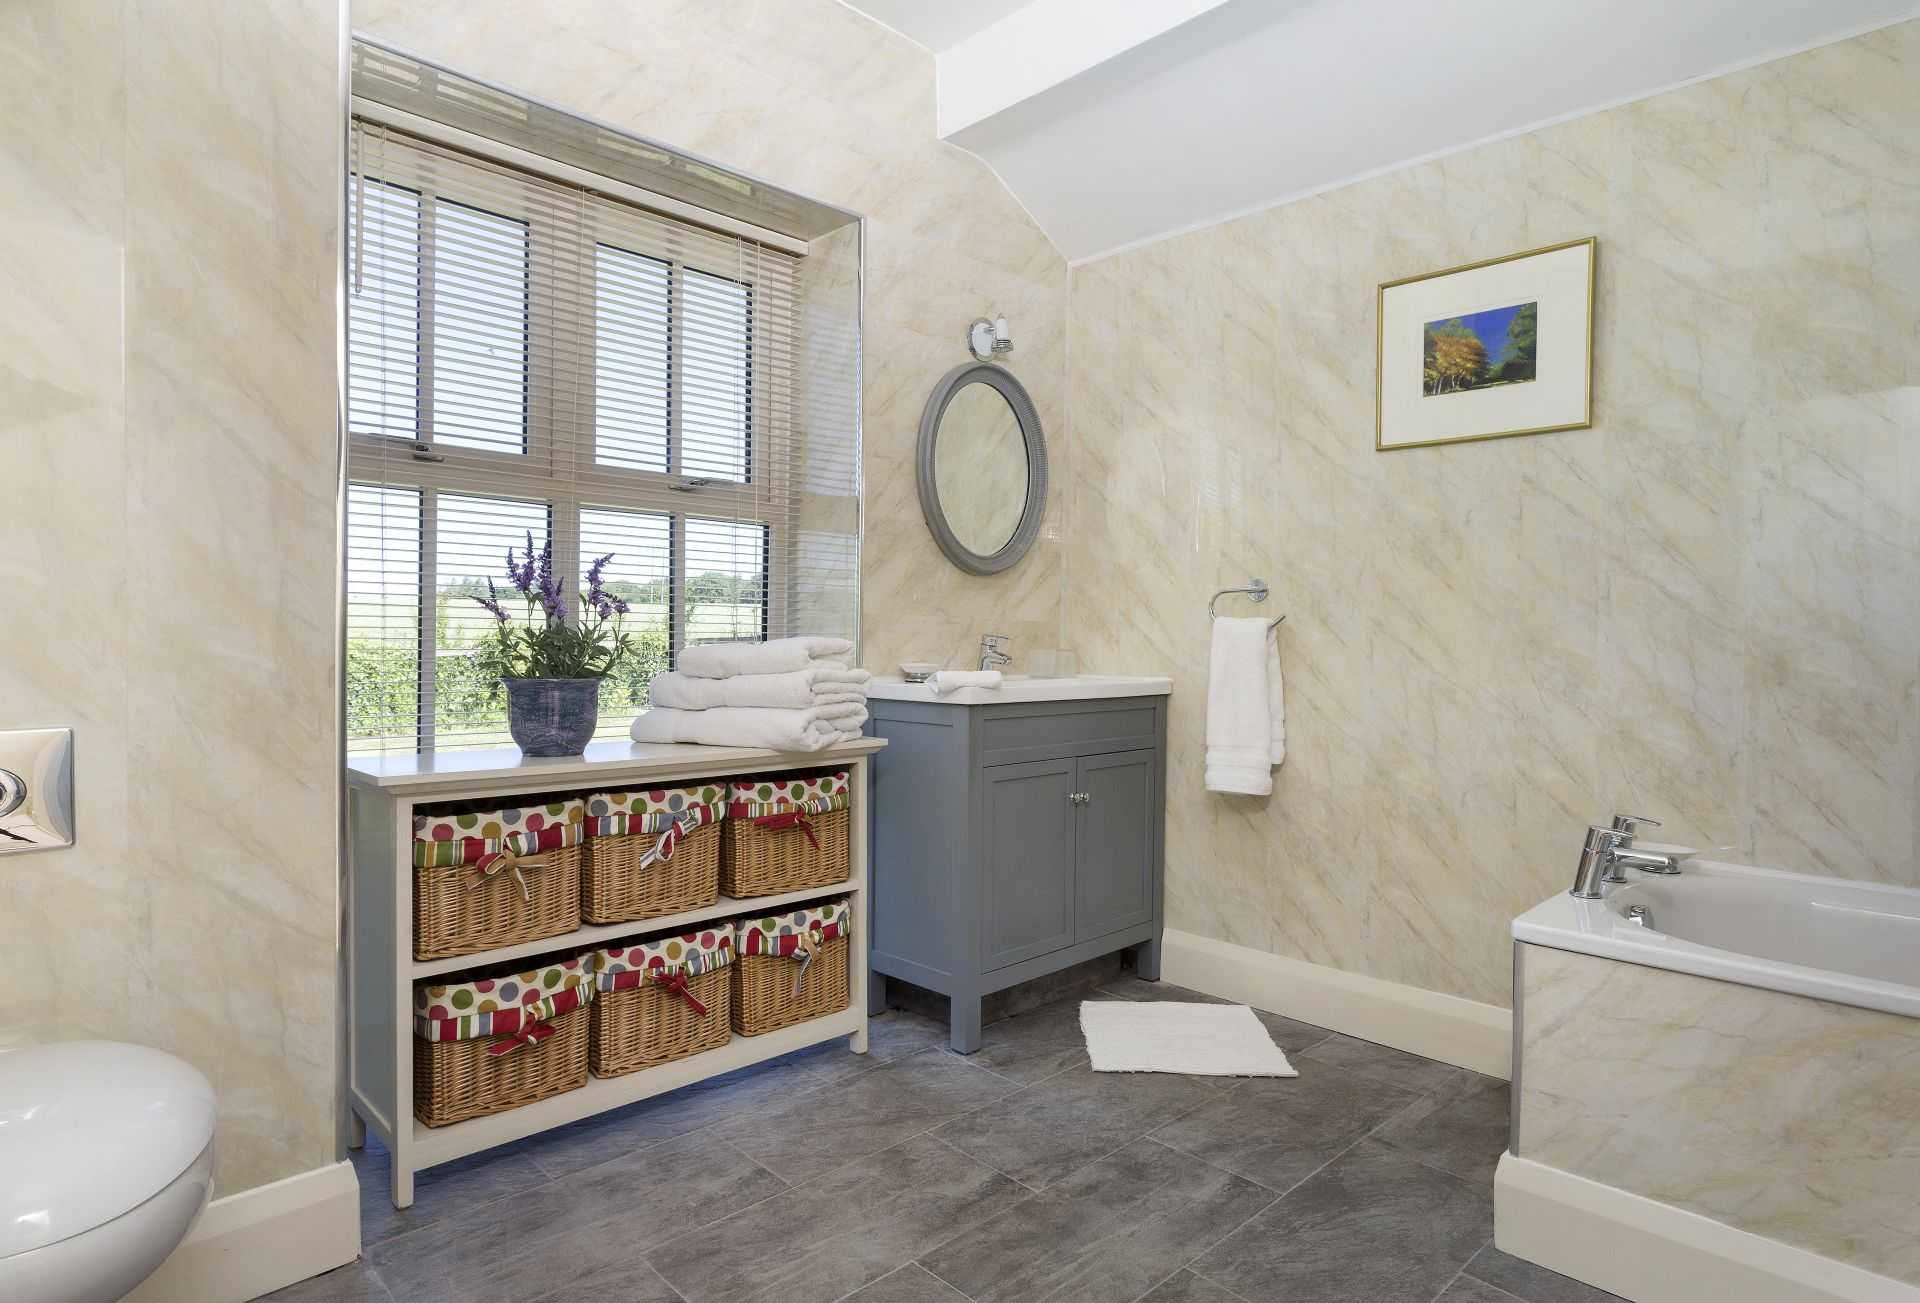 Ground floor: Generous en-suite bathroom with separate shower